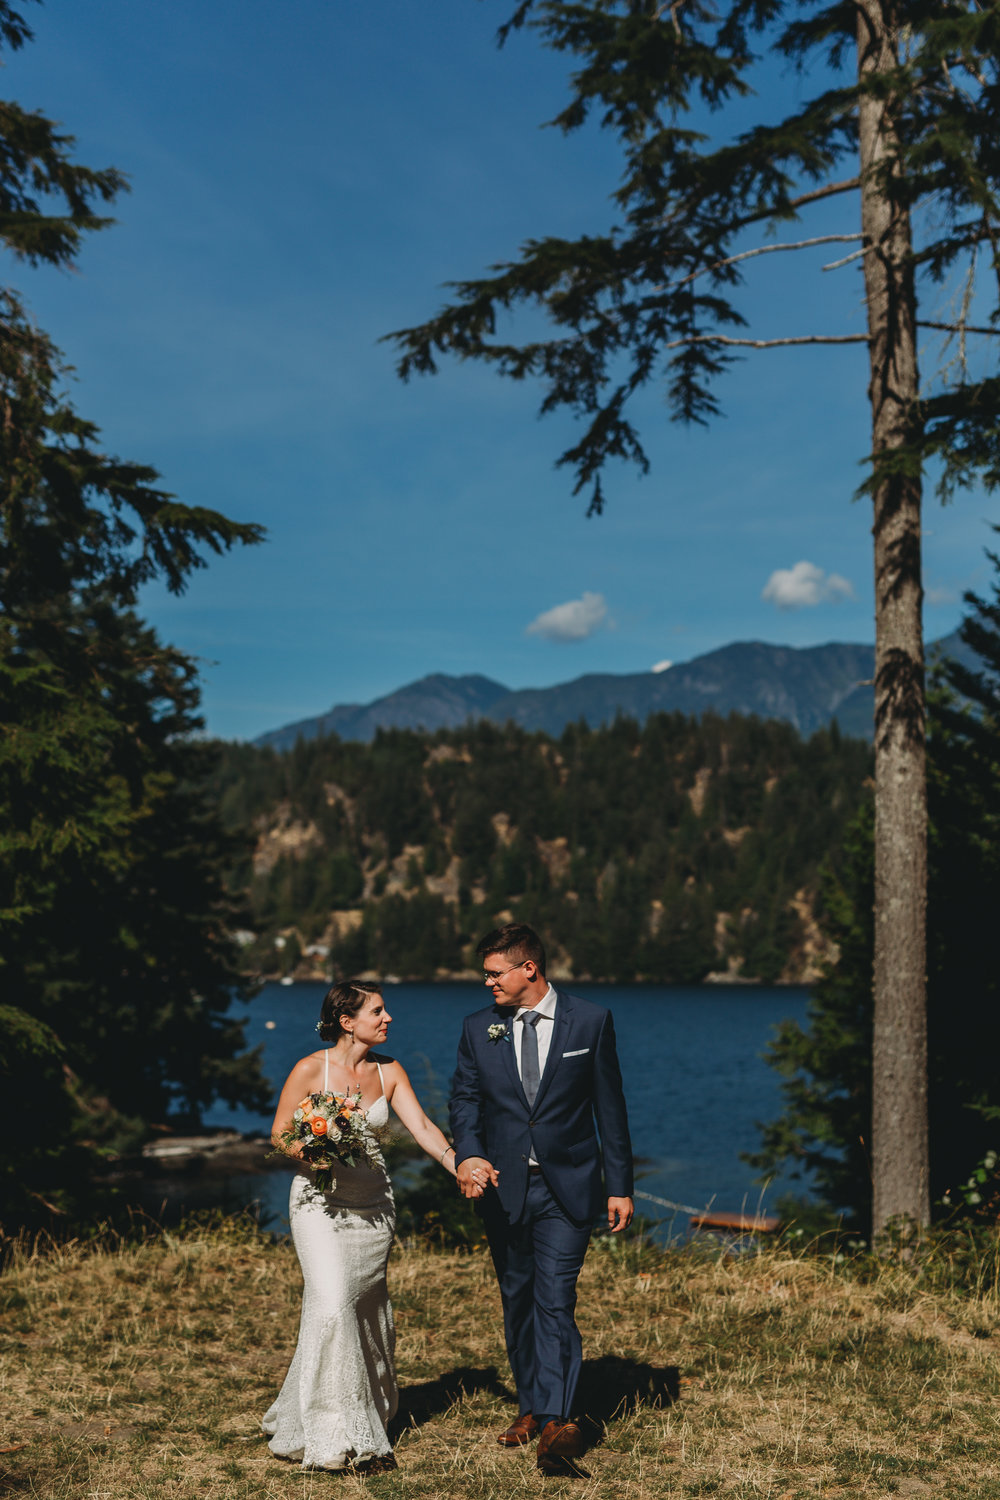 Camp Fircom Wedding - Vancouver Wedding Photographer & Videographer - Sunshine Coast Wedding Photos - Sunshine Coast Wedding Photographer - Jennifer Picard Photography - IMG_1715.jpg